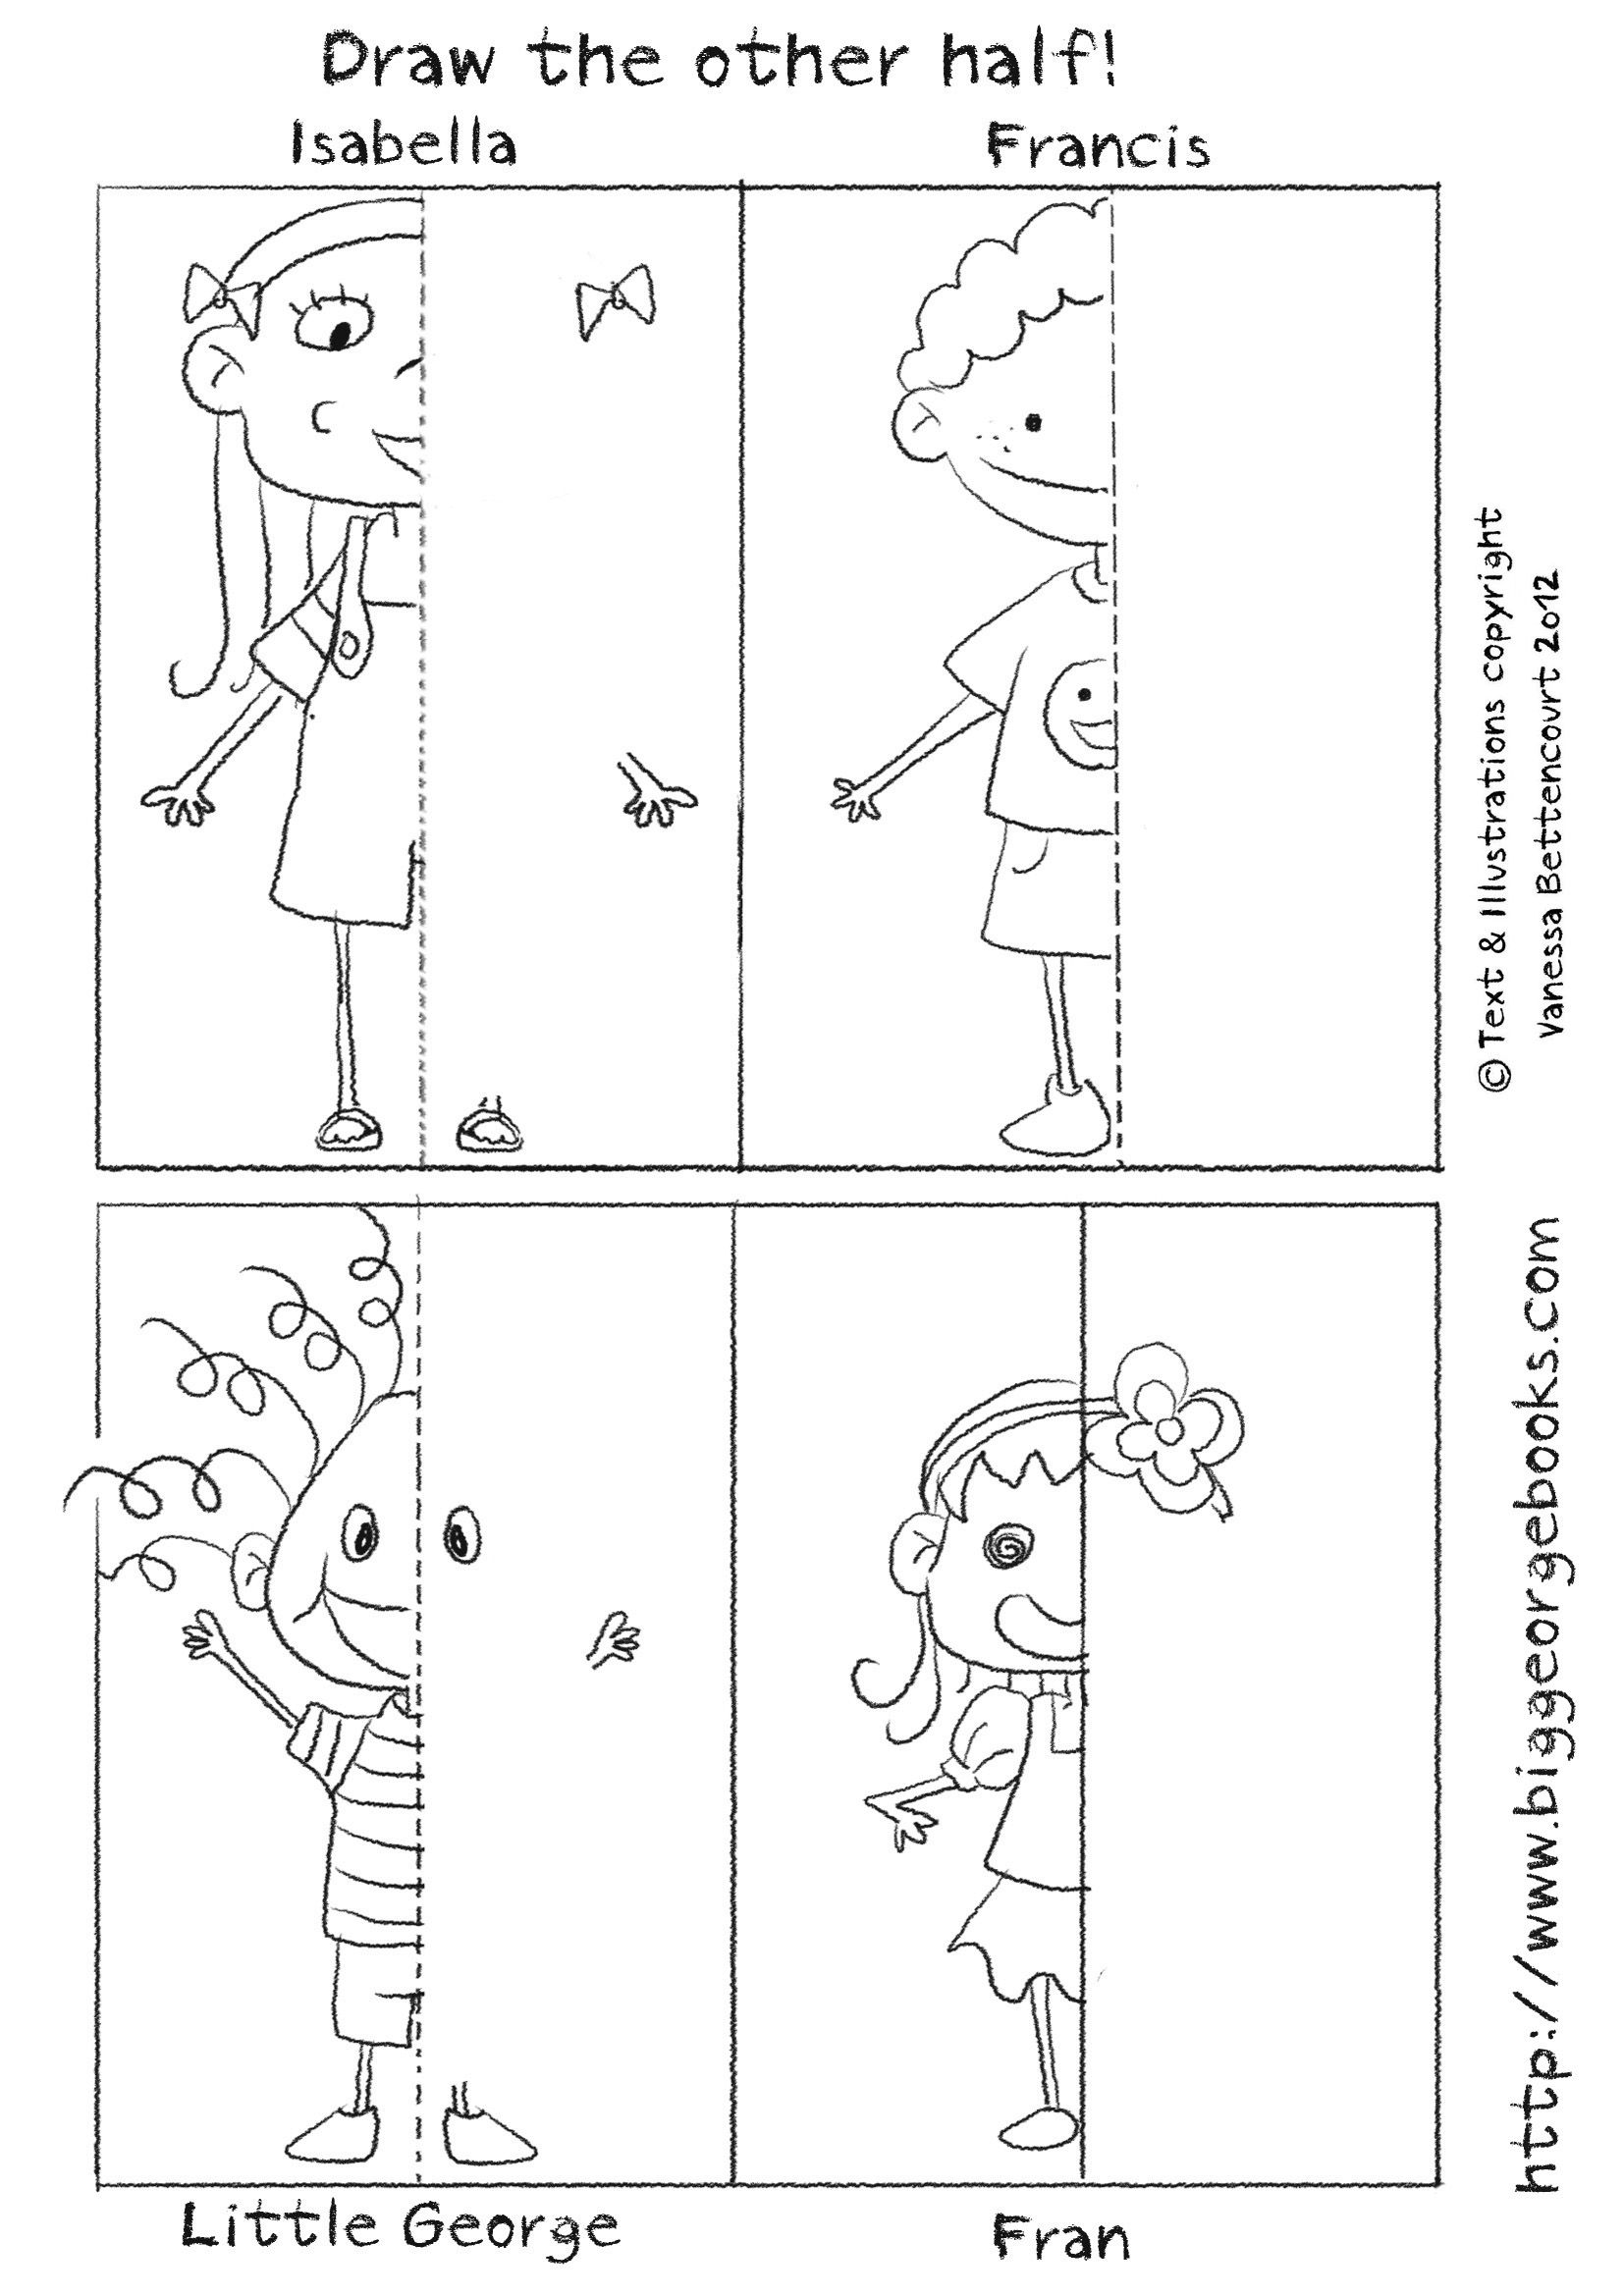 worksheet Draw The Other Half Of The Picture Worksheet draw the other half download file from official site big free worksheets